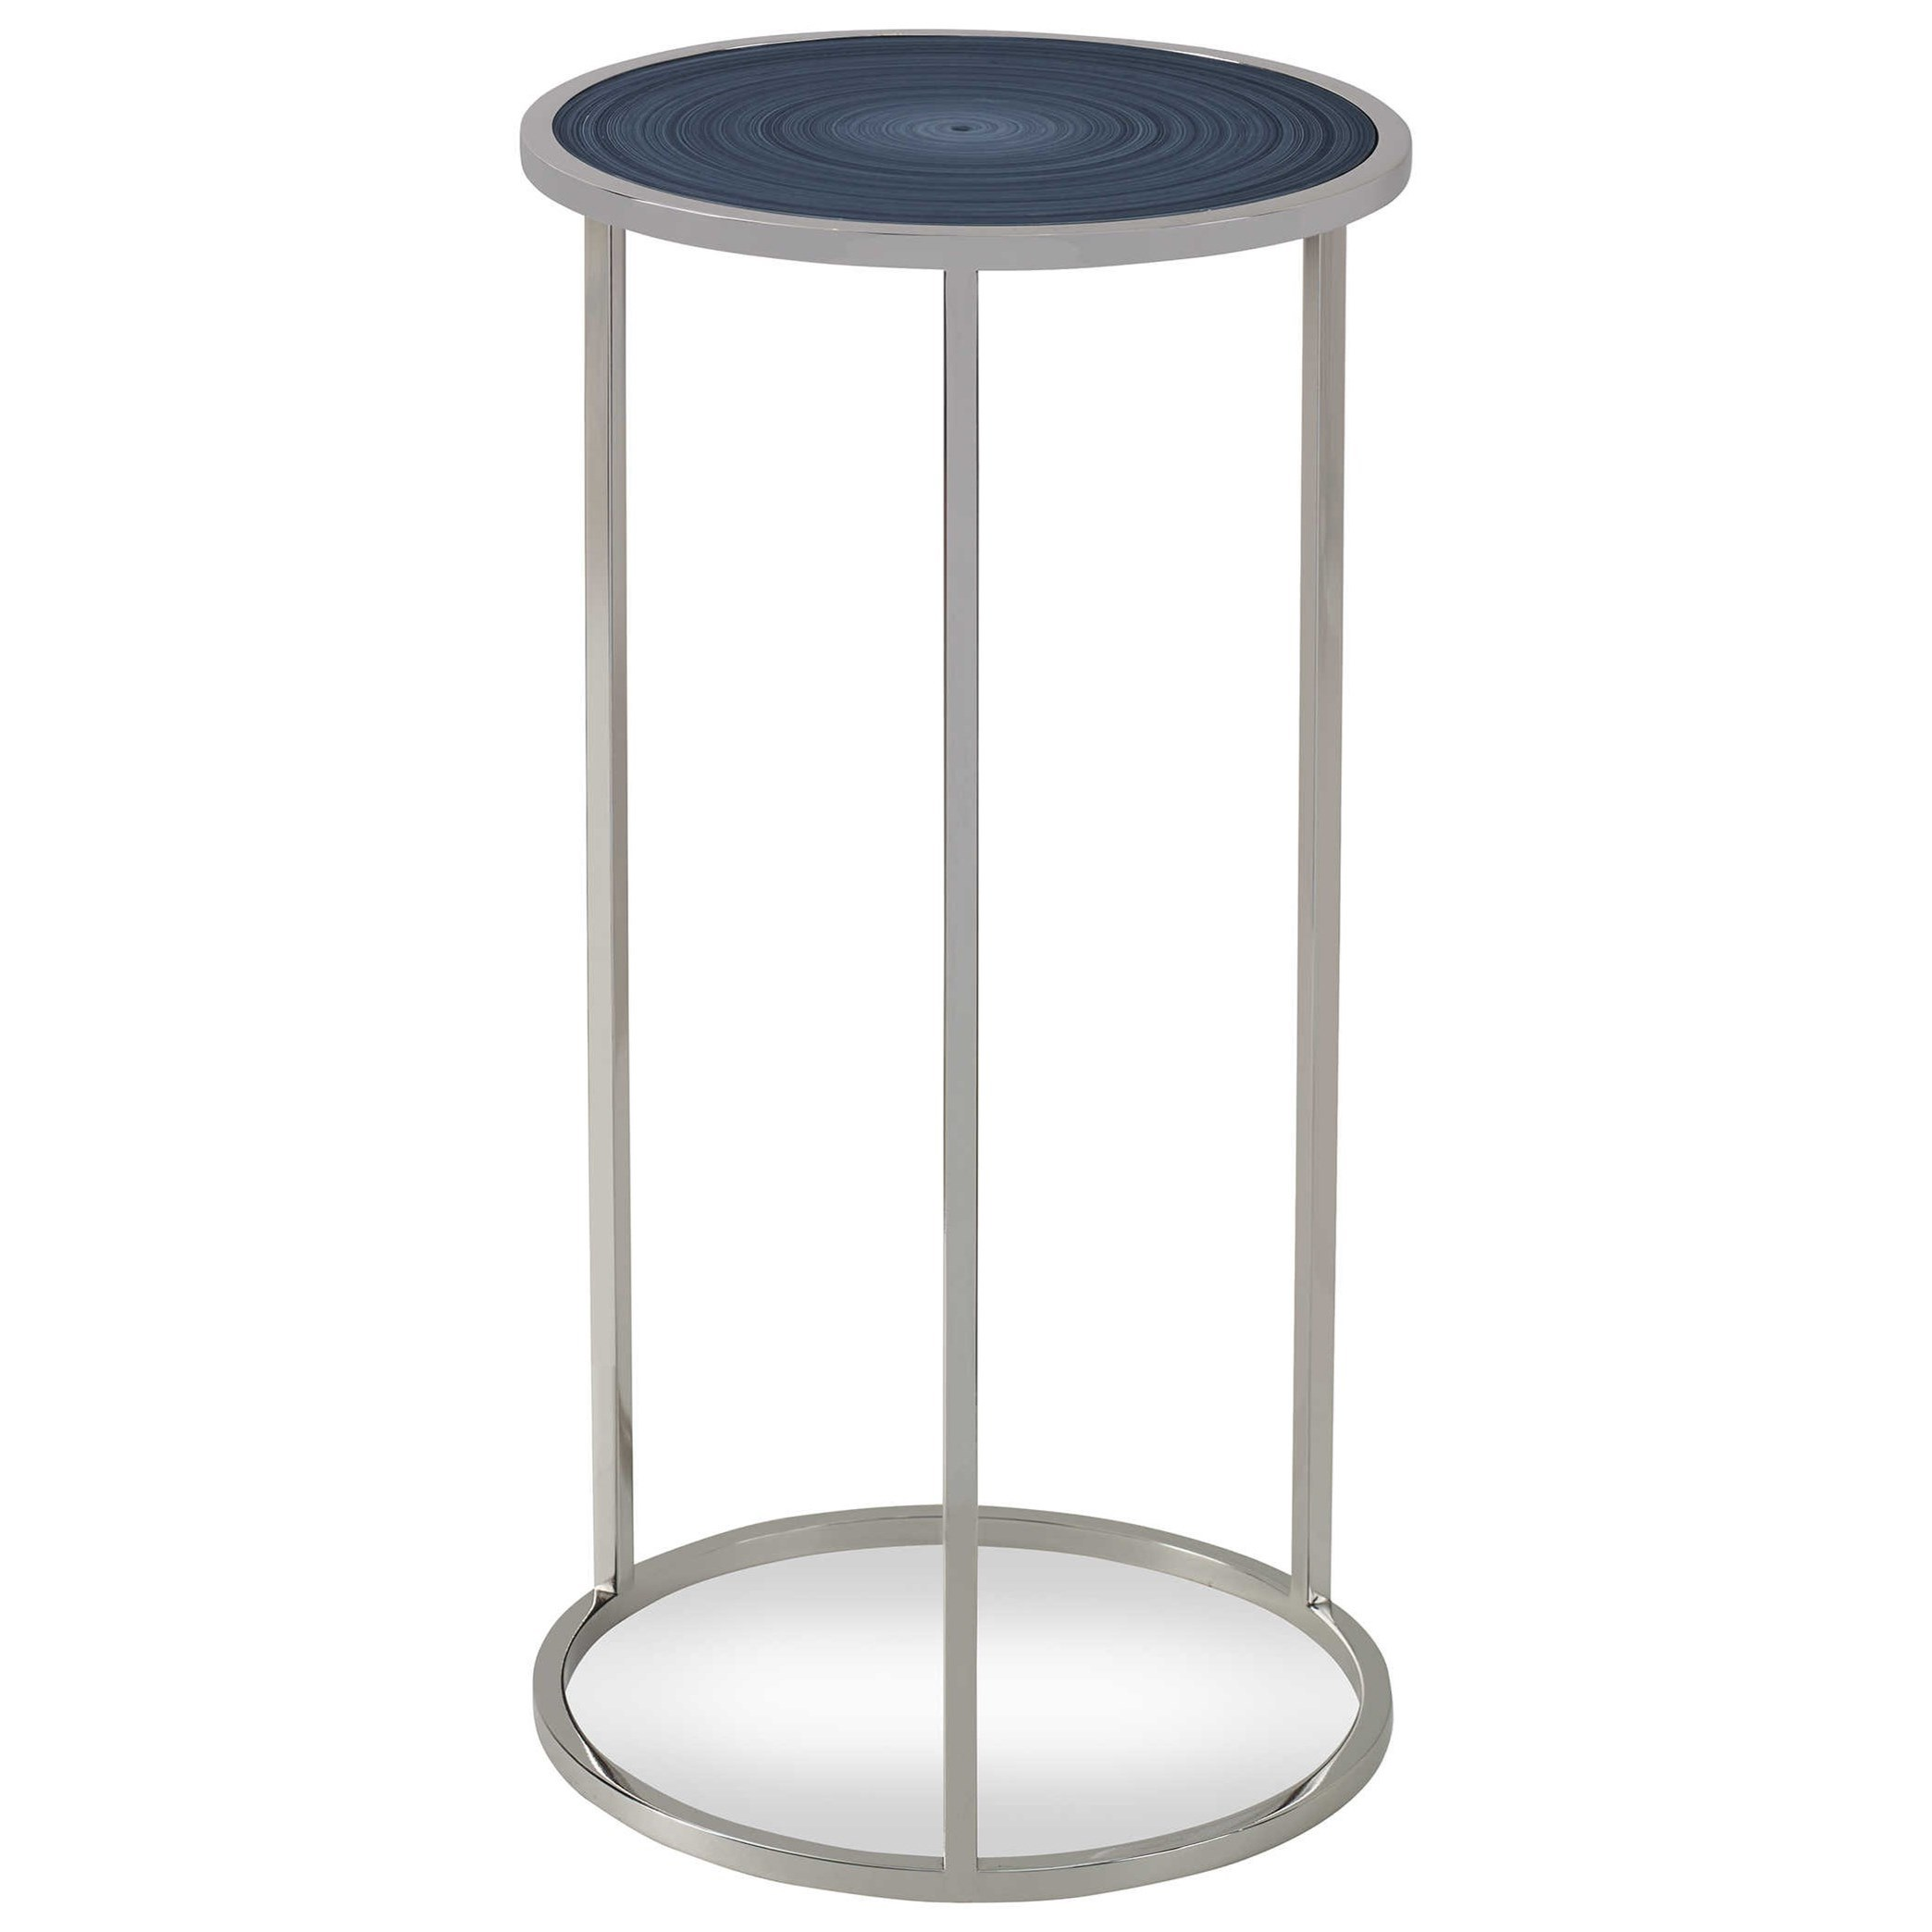 Accent Furniture - Occasional Tables Whirl Round Drink Table by Uttermost at Furniture and ApplianceMart